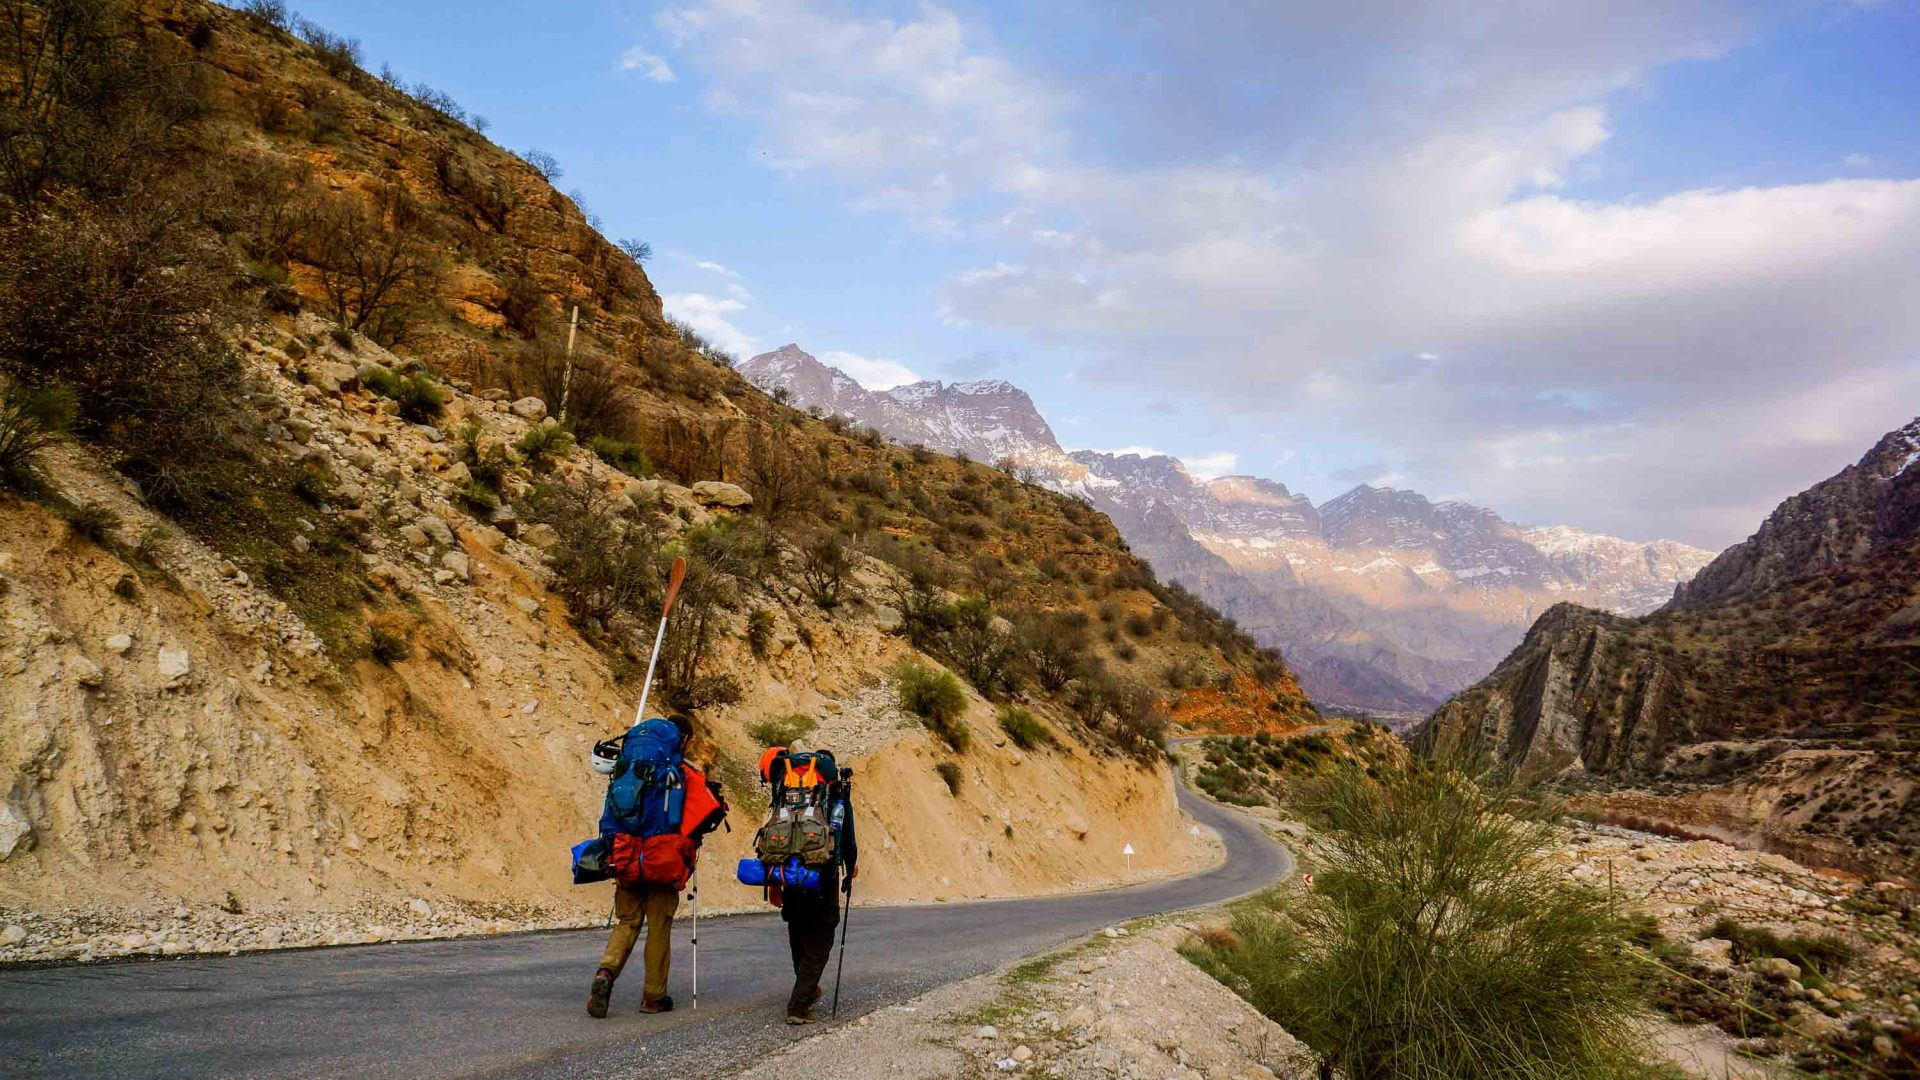 Leon and Tom walk through the mountains, following the river Karun in Iran.